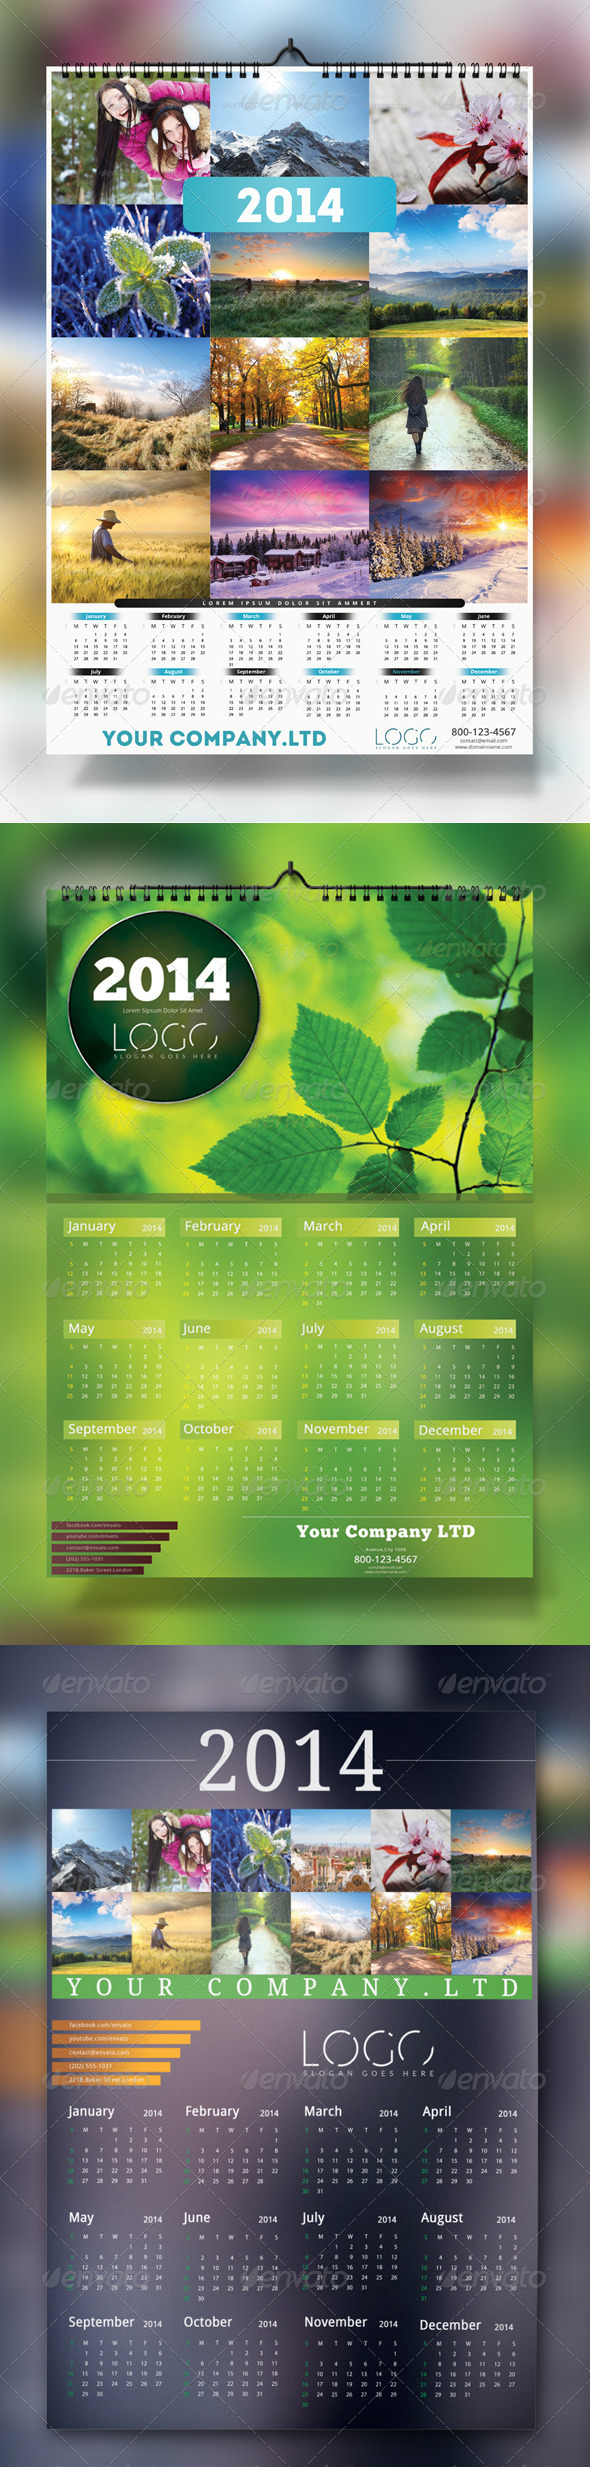 GraphicRiver 2014 Wall Calendar Bundle 6274122